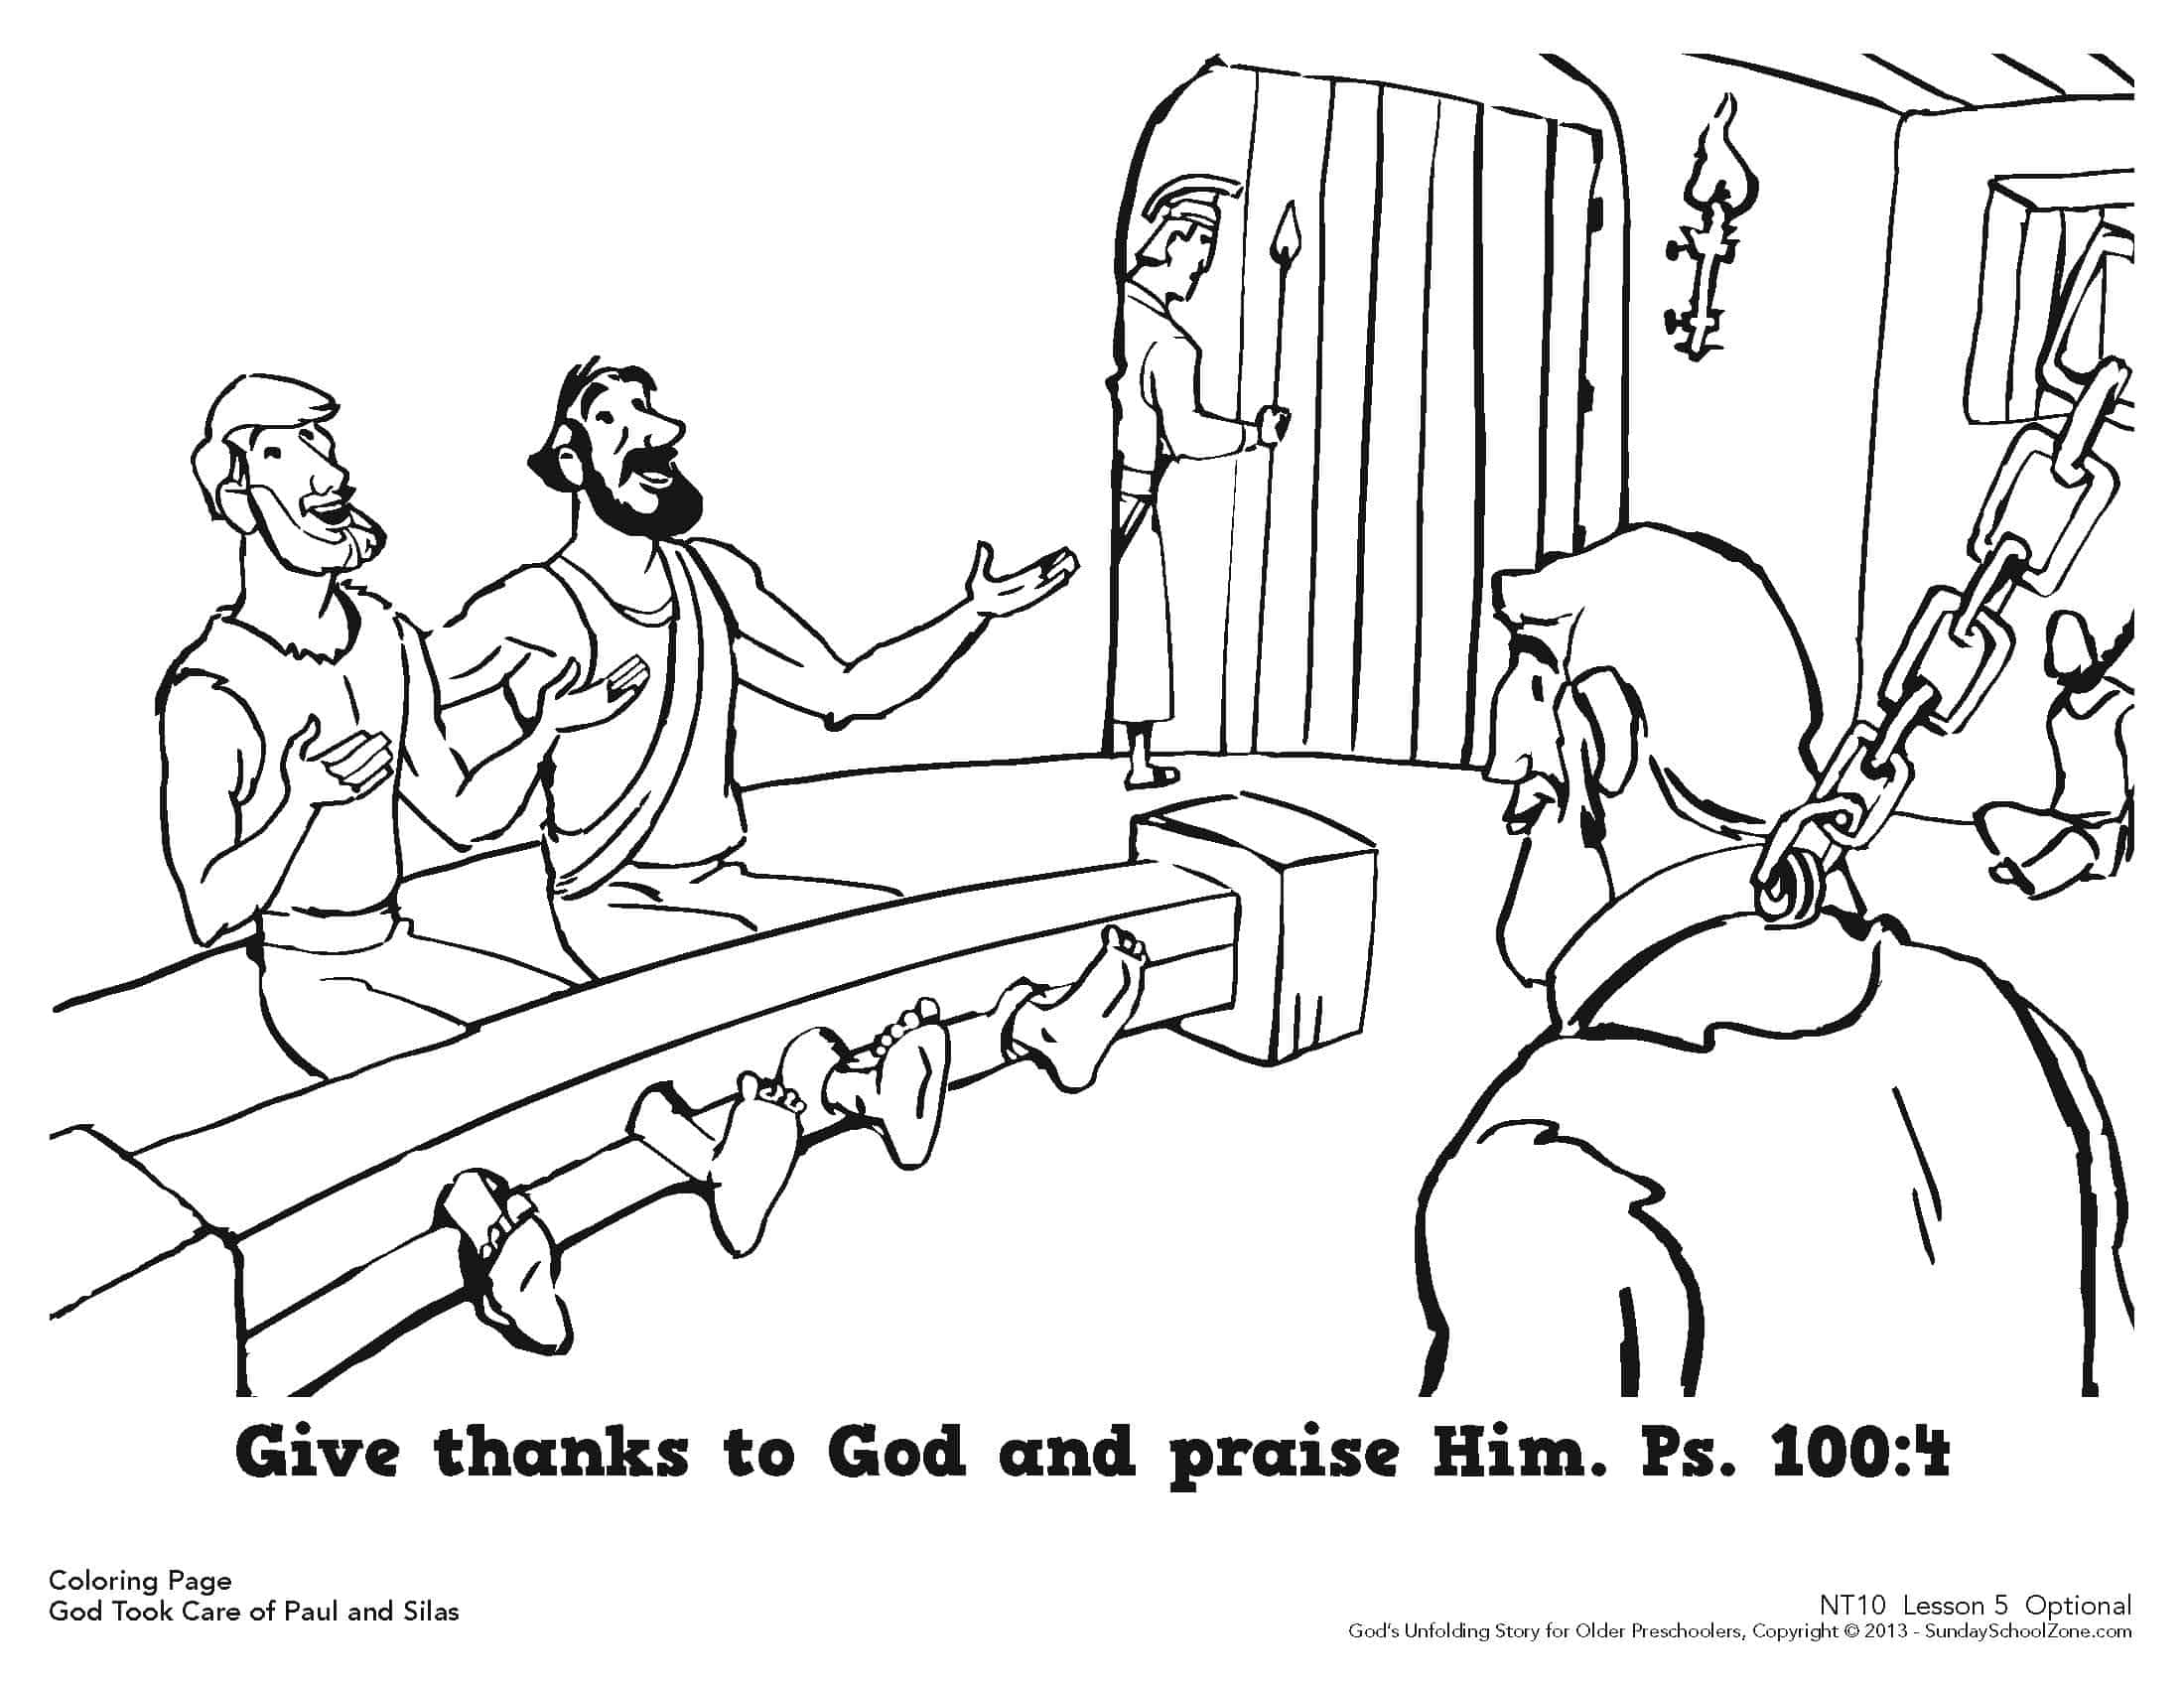 paul and silas were rescued from jail coloring page for kids